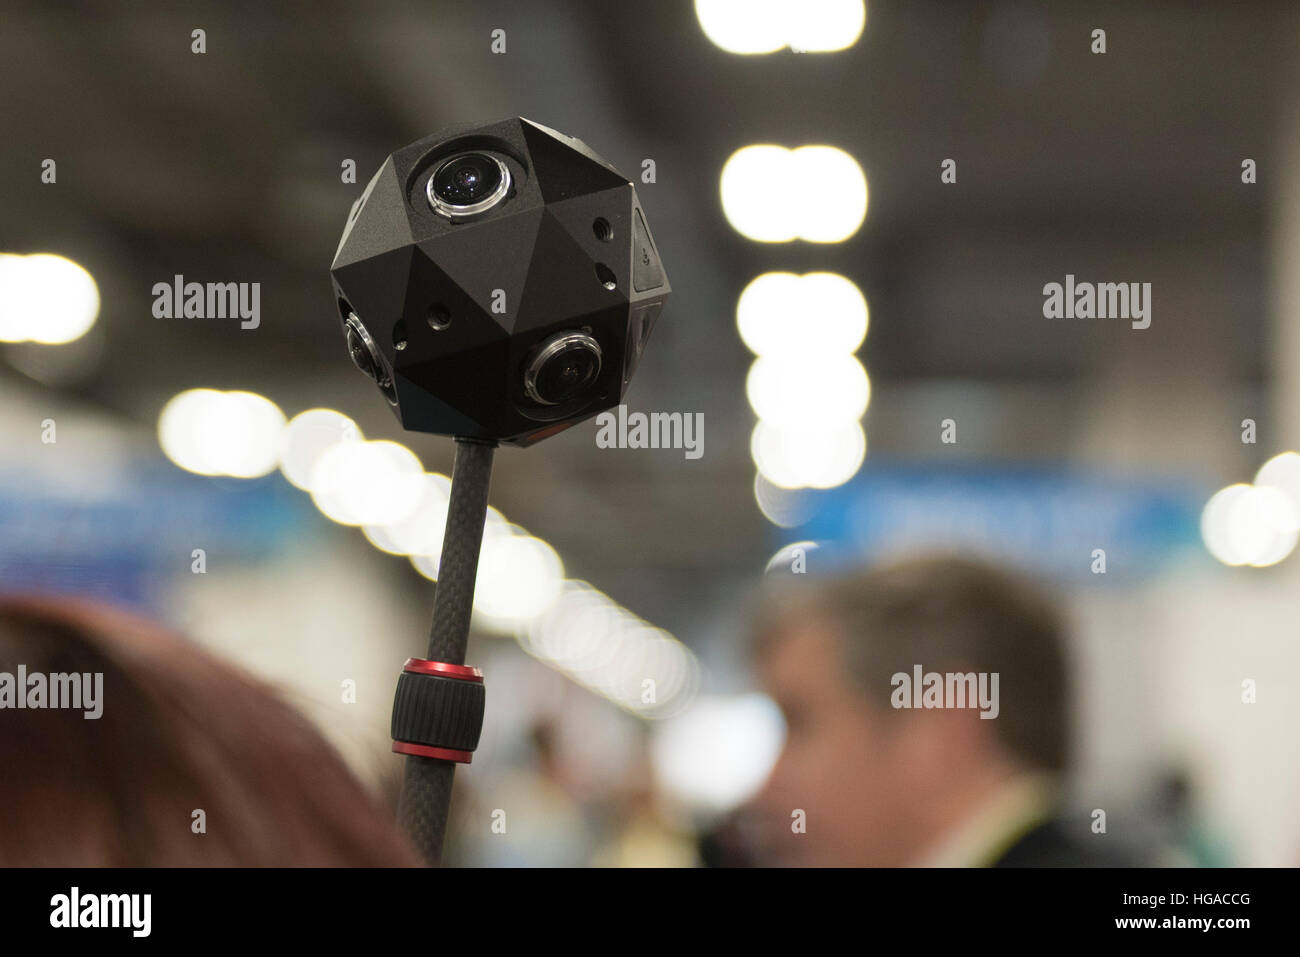 360 Camera Stock Photos Images Page 3 Alamy Astak Wire Diagram A Degrees Of The